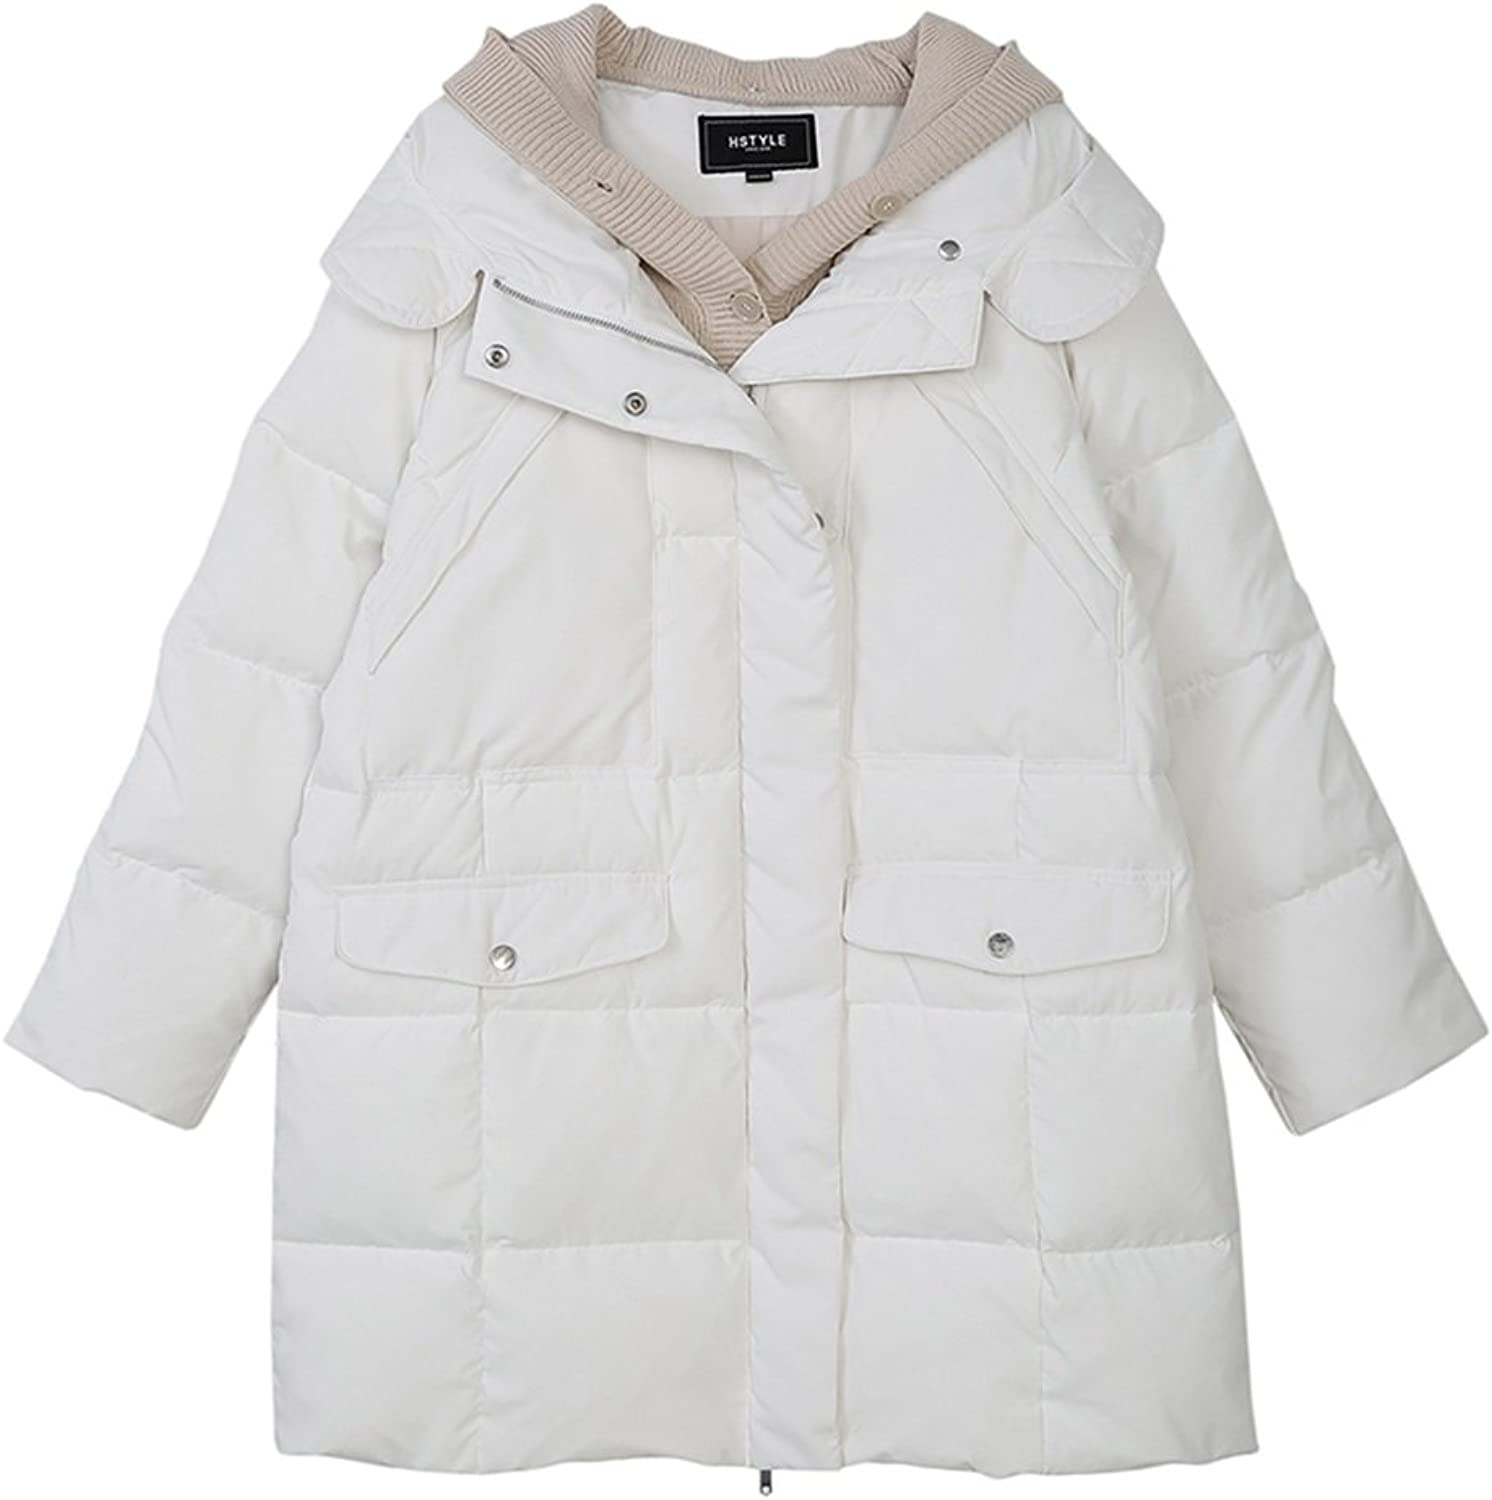 TSINYG Women's Fashion Solid color Loose Hooded Down Jacket Winter Warm Twopiece Long Coat ( color   White , Size   L )